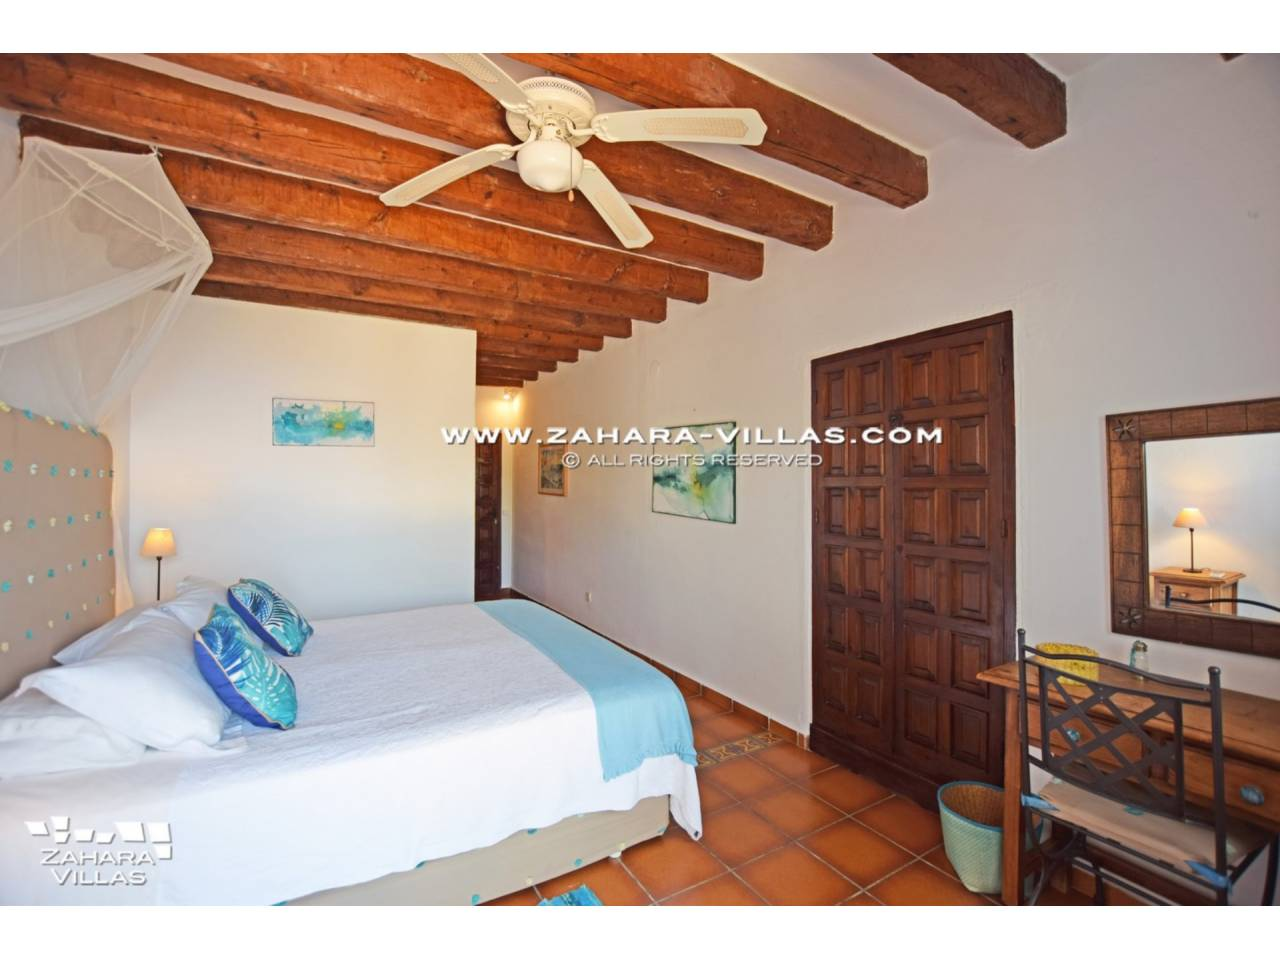 Imagen 47 de Wonderful Villa for sale in Atlanterra-Zahara de los Atunes